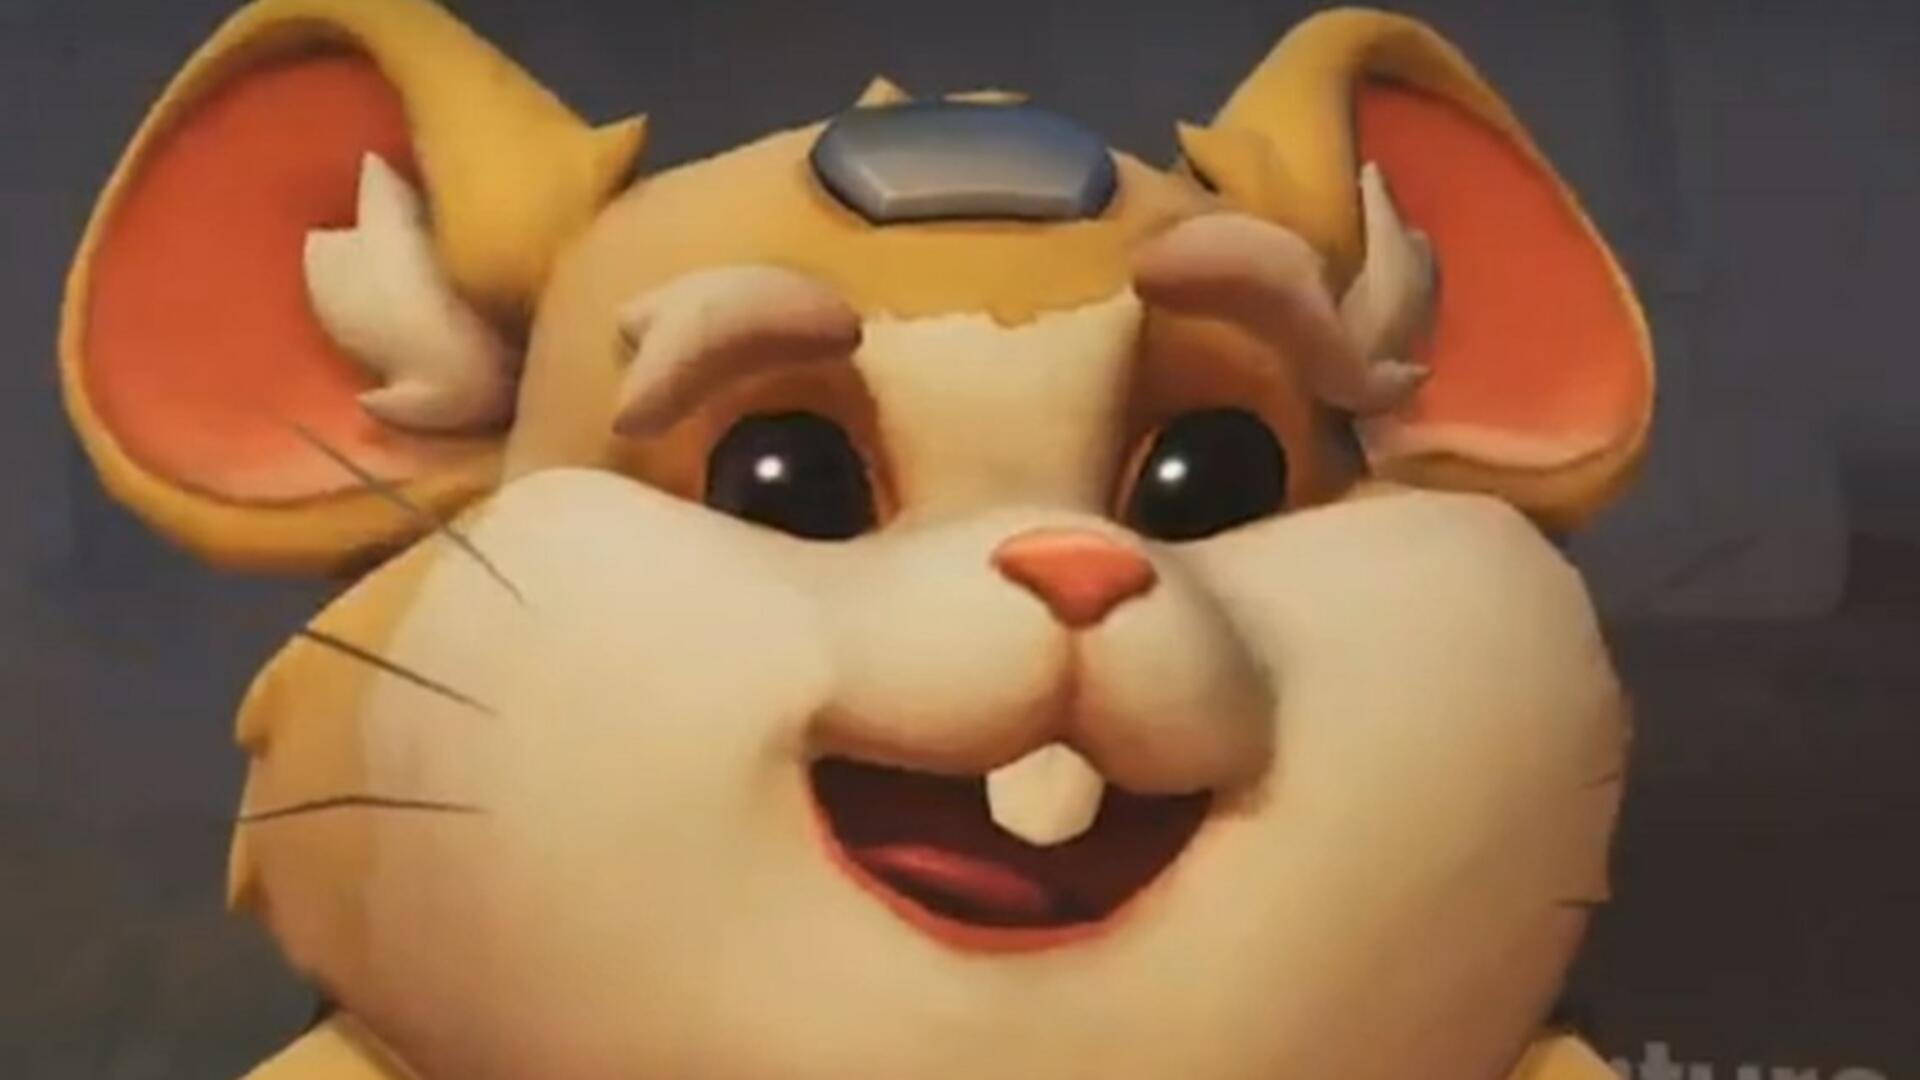 Blizzard Reveals New Overwatch Hero: Hammond, a Hamster in a Ball